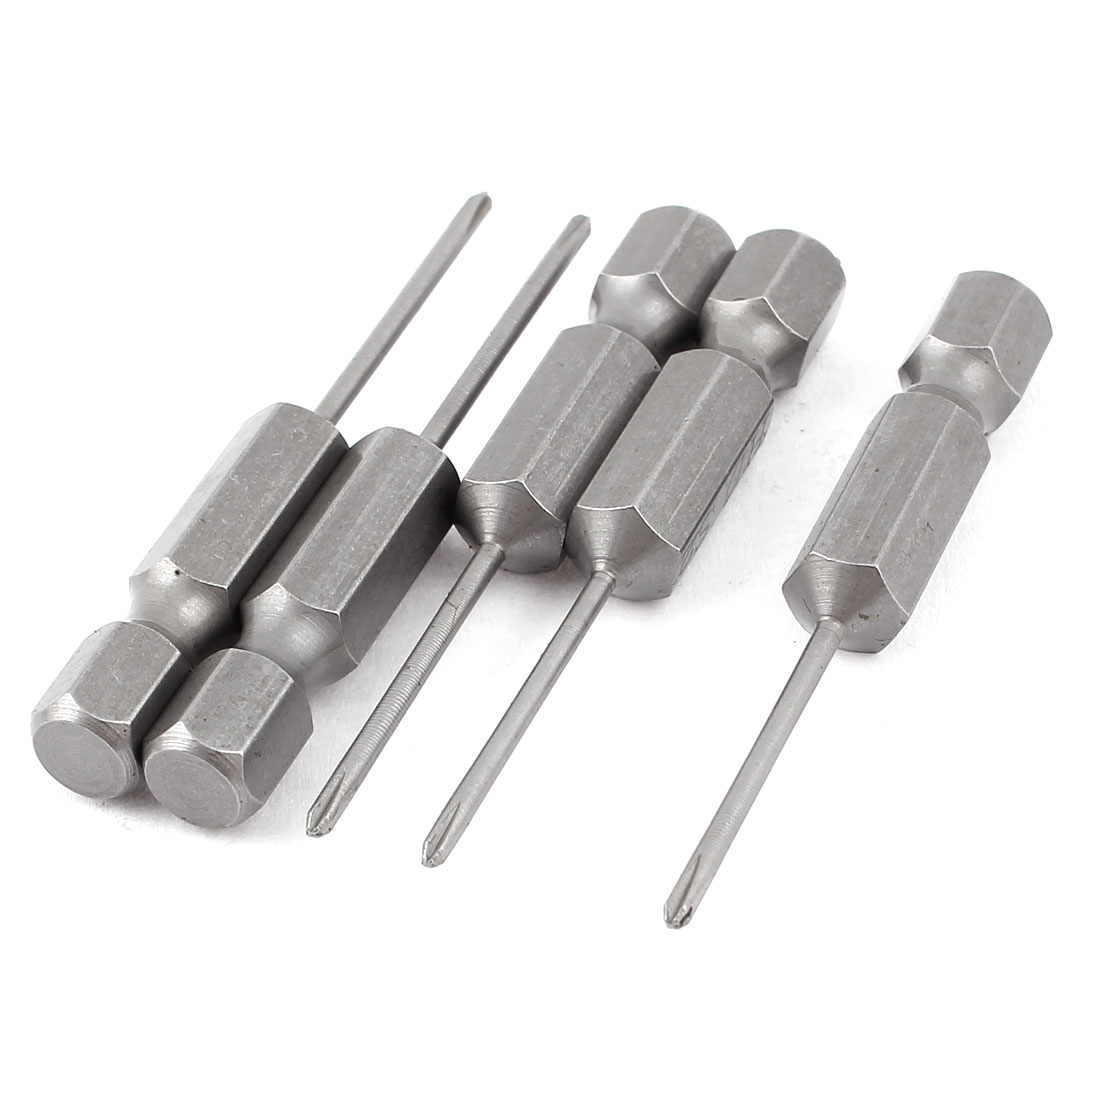 "5pcs 1/4"" Hex Shank 1.5mm Tip PH000 Magnetic Phillips Crosshead Screwdriver Bits 50mm"